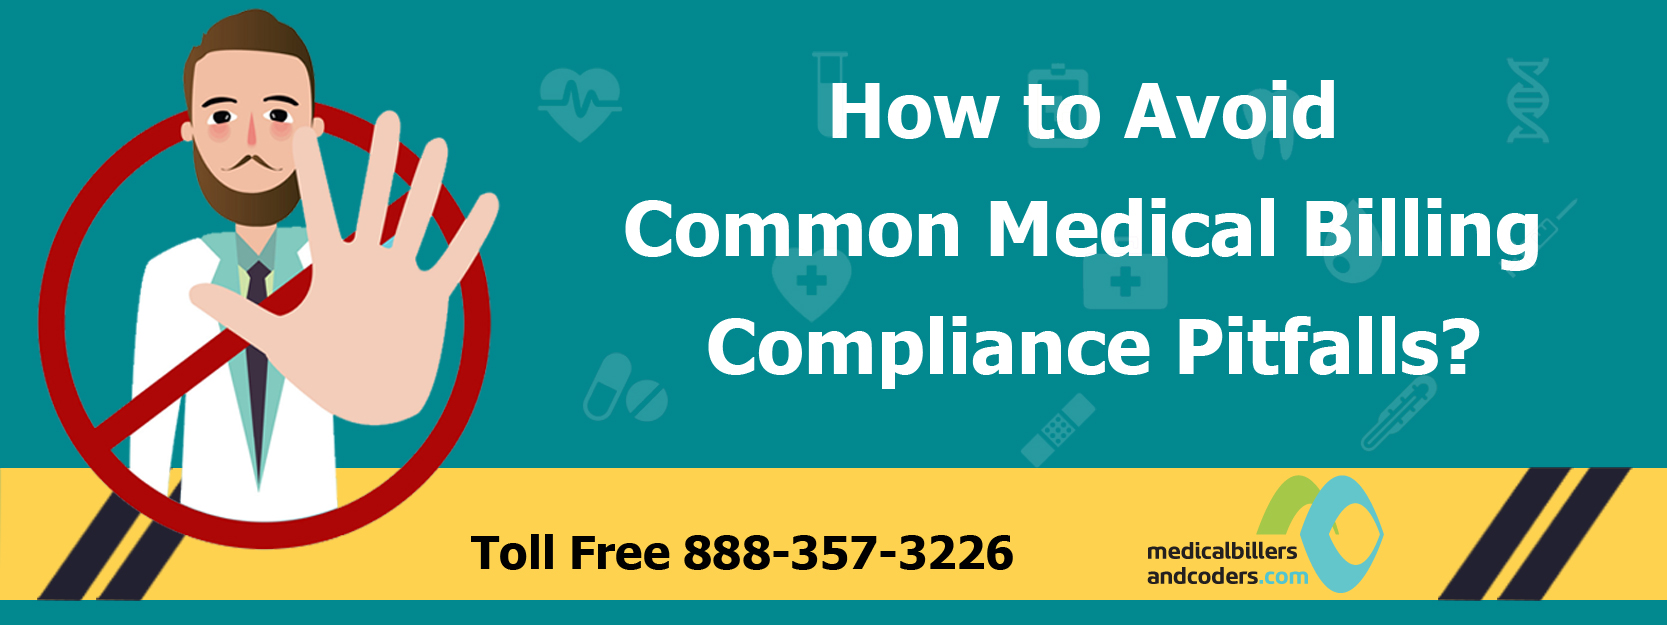 How-to-Avoid-Common-Medical-Billing-Compliance-Pitfalls?